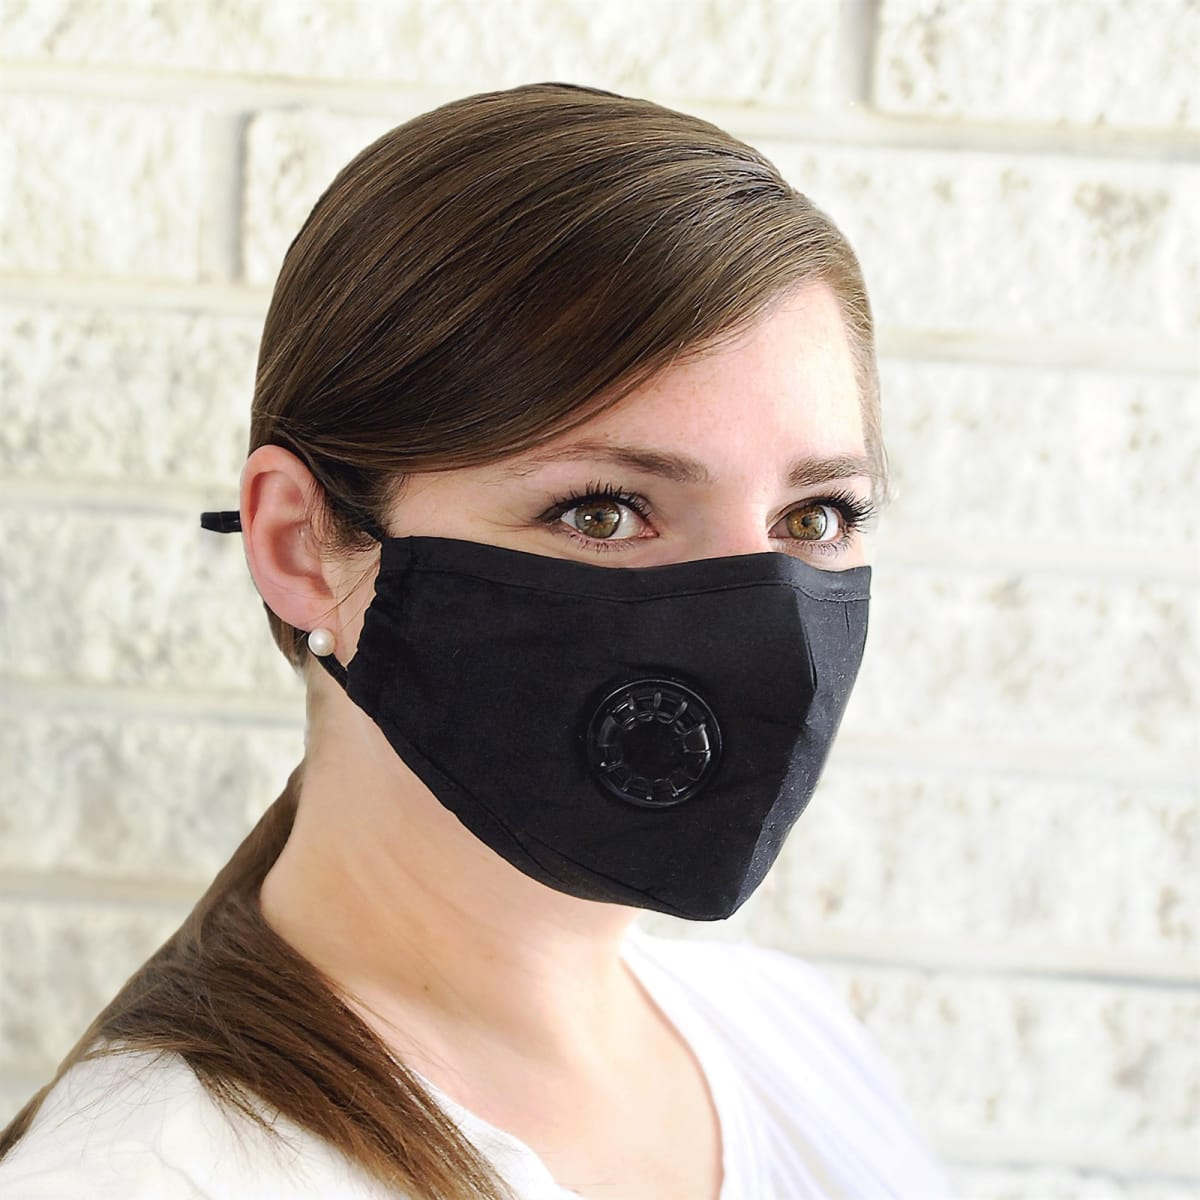 Easy Breathe Washable Masks | Includes PM2.5 Filter